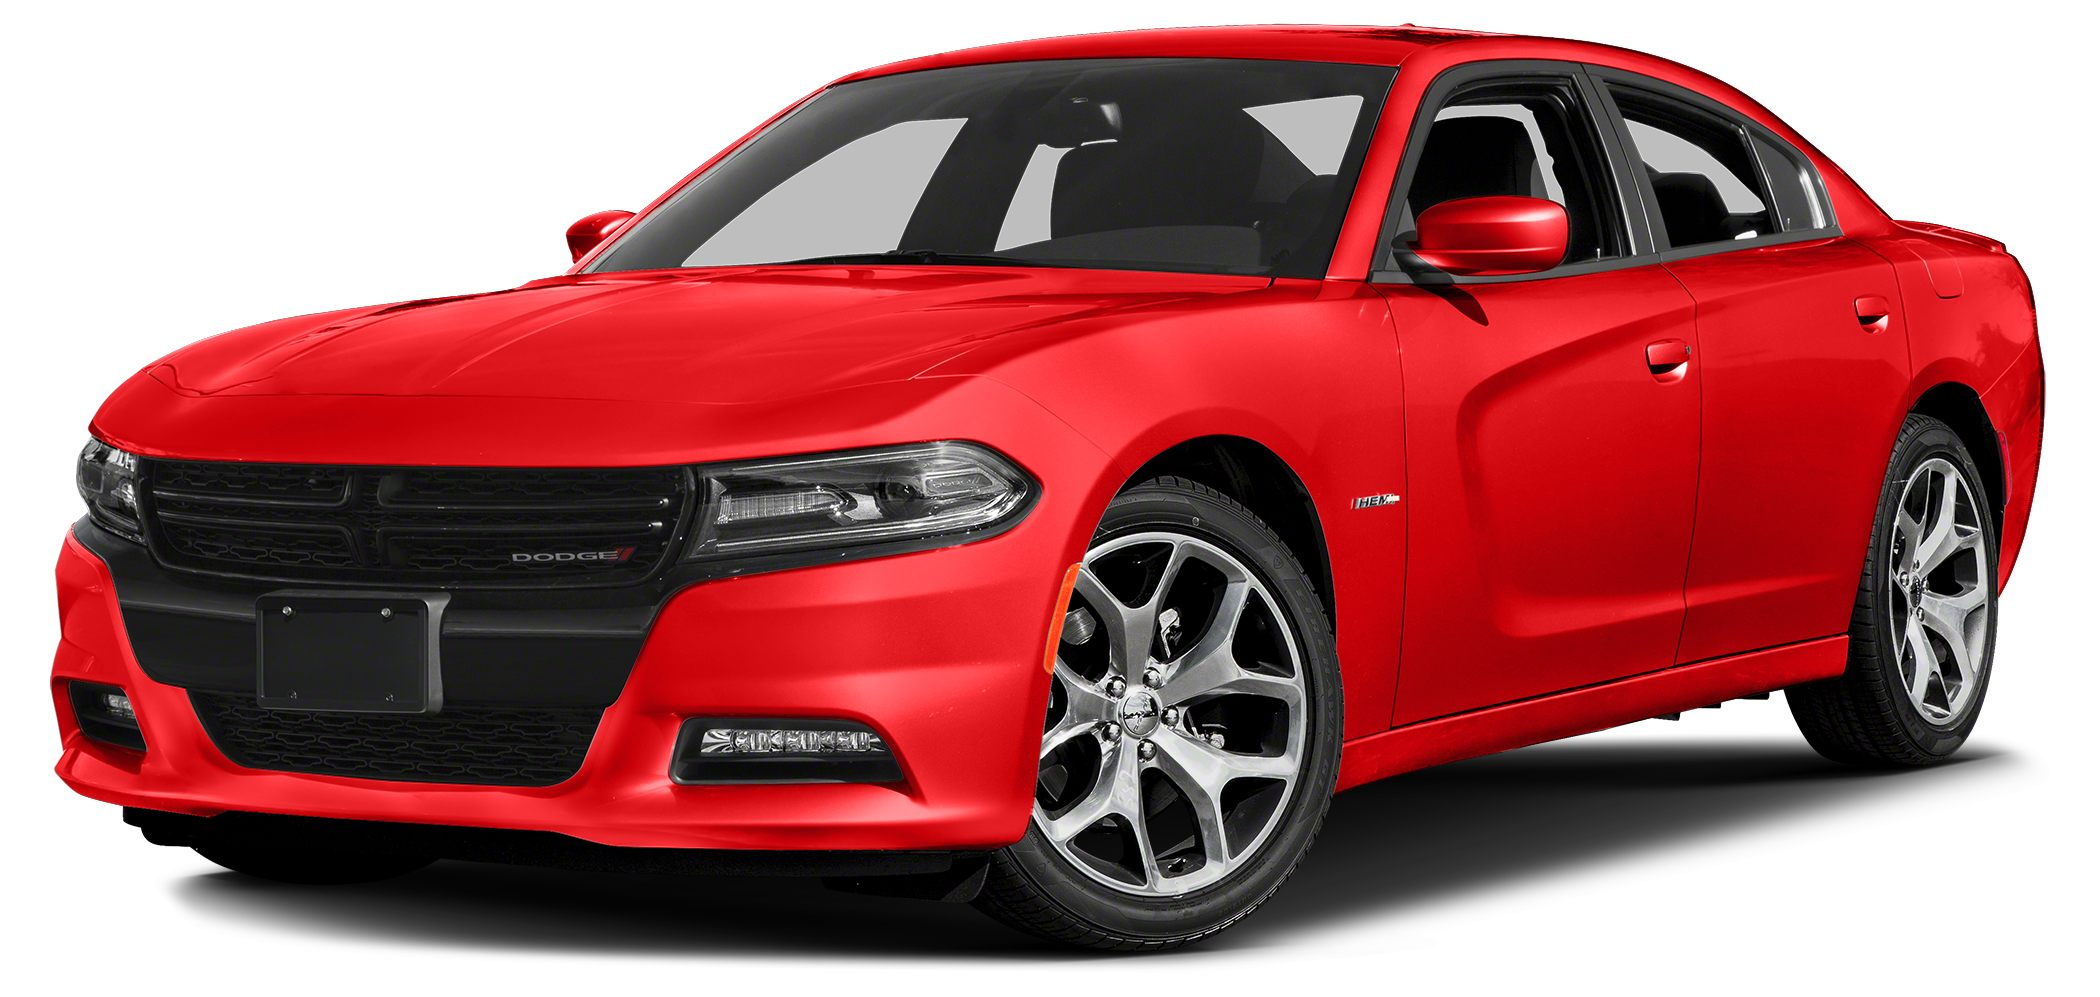 2017 Dodge Charger RT DISCLAIMER We are excited to offer this vehicle to you but it is currently